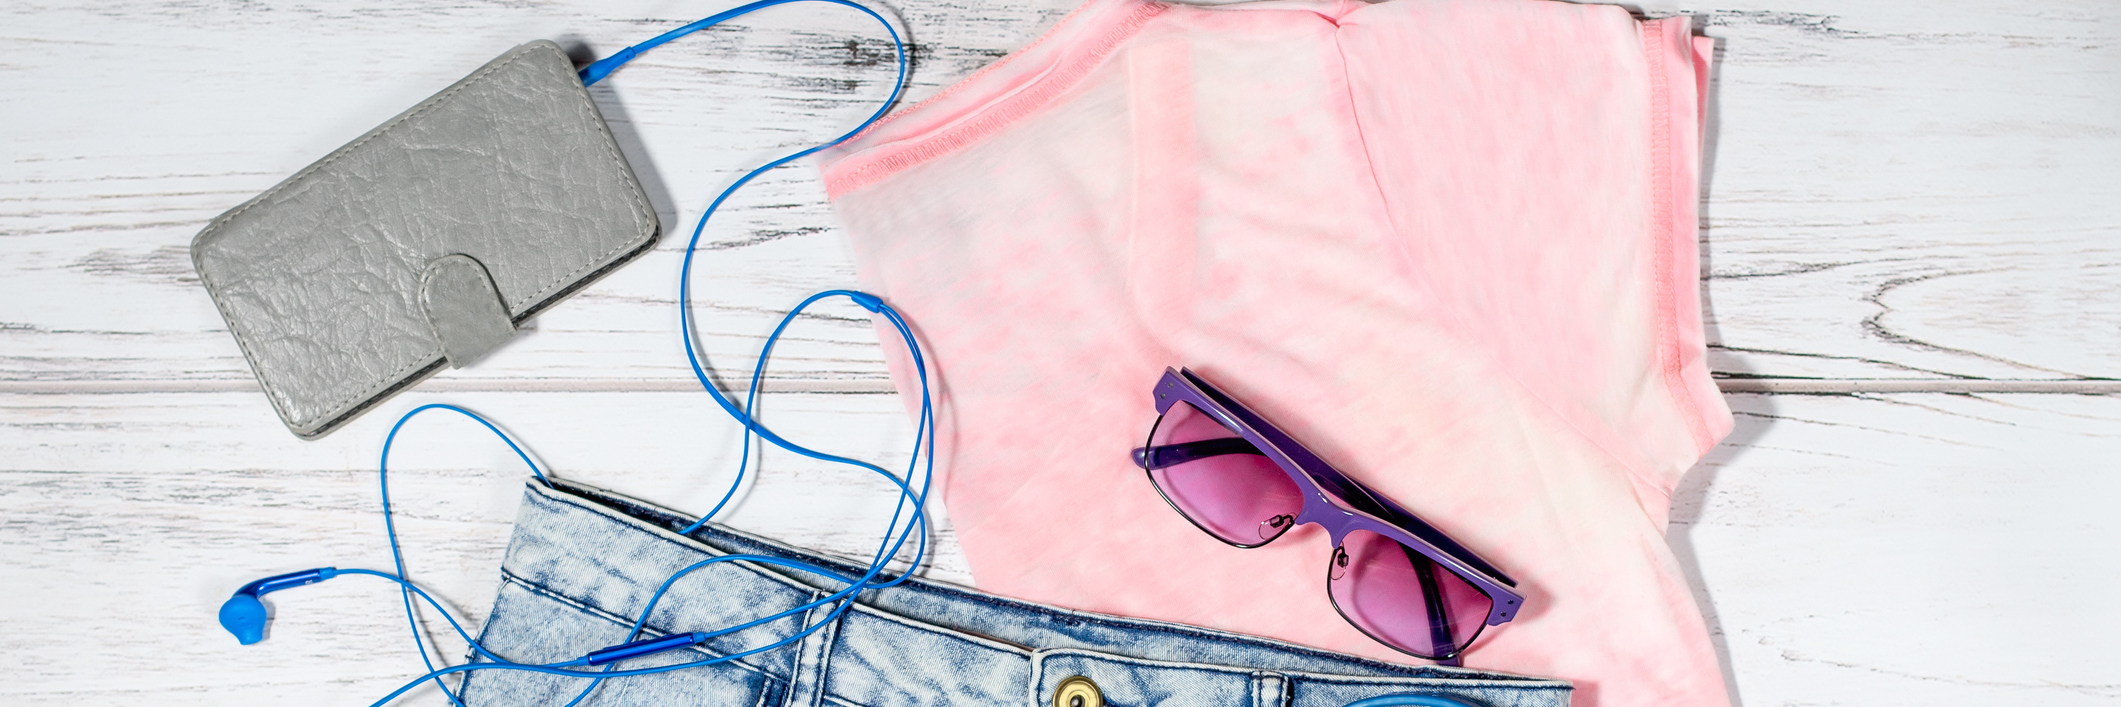 Female casual summer clothing collection overhead - clothes and electronics